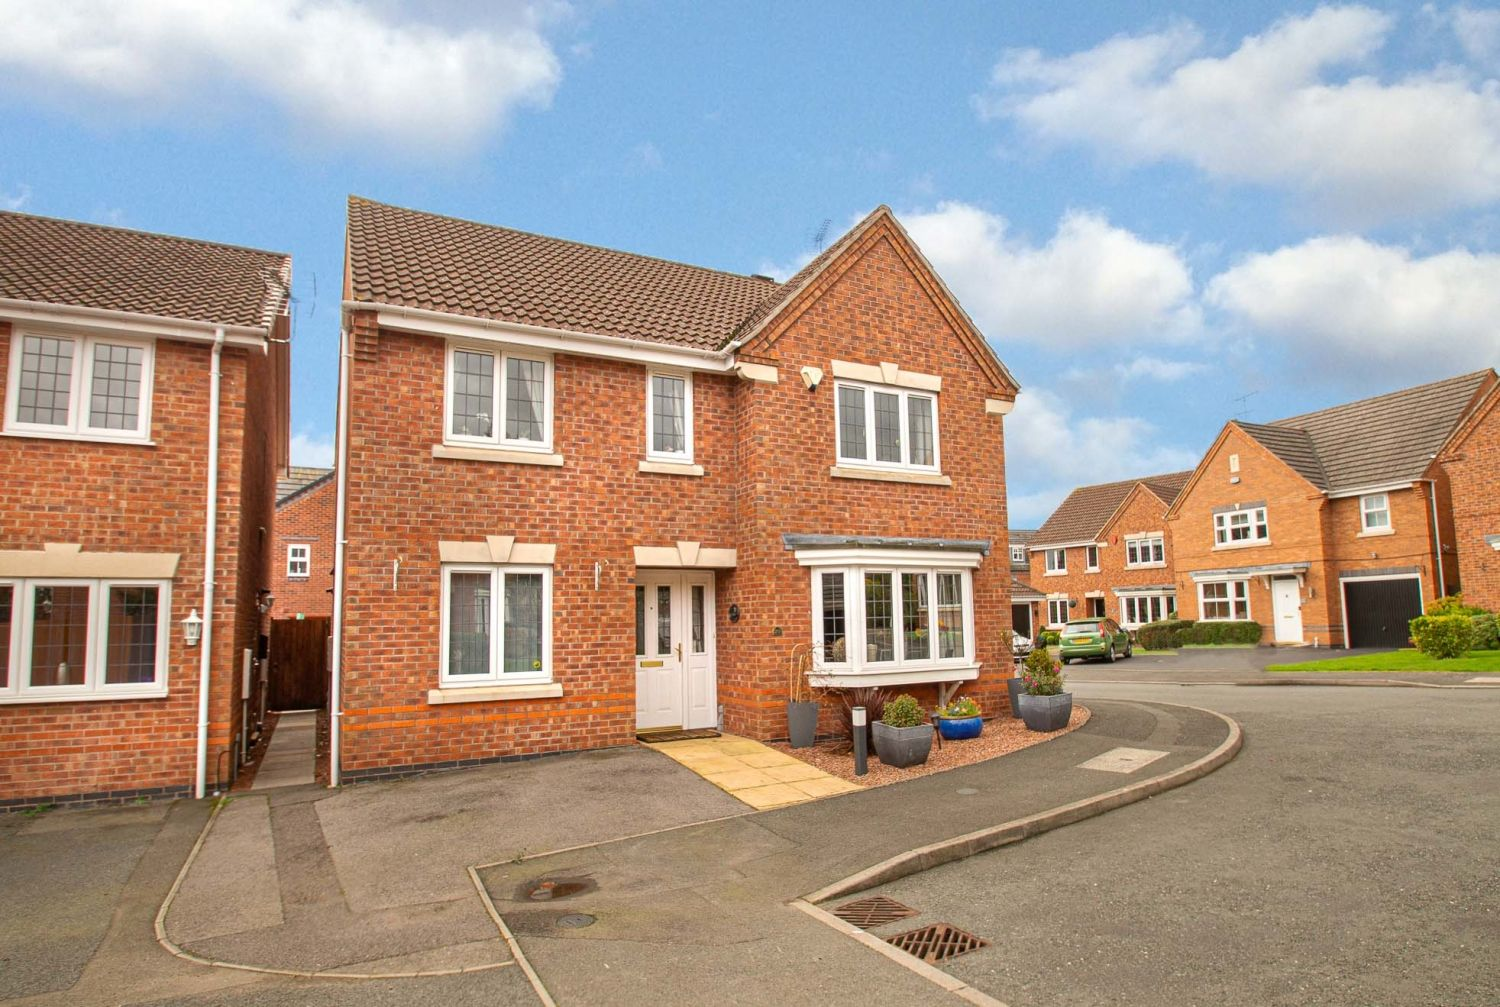 4 bed detached for sale in Harris Close, Greenlands - Property Image 1